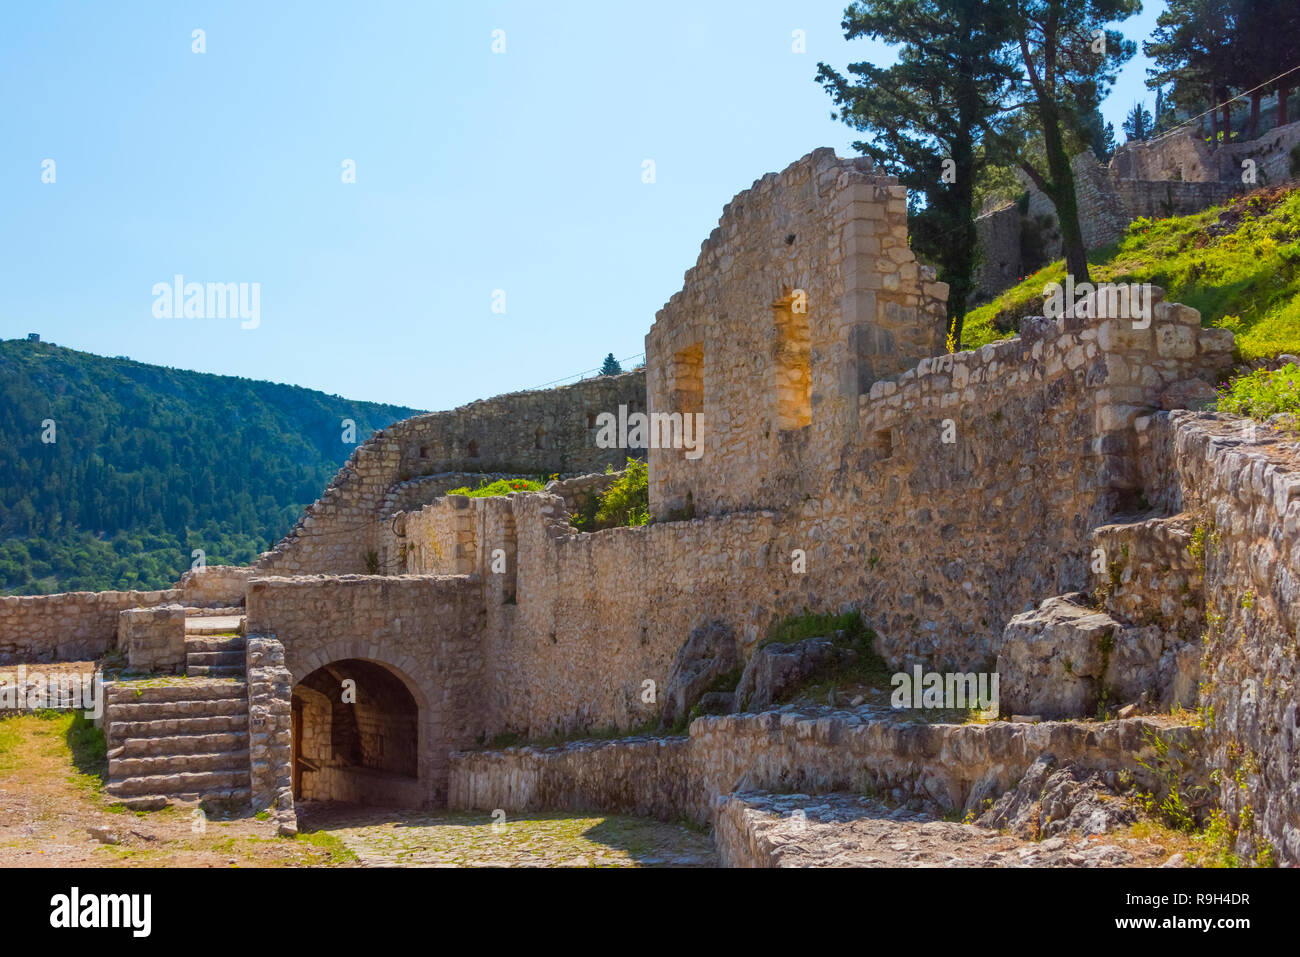 Old town of Vidoski above the modern city, Stolac, Bosnia and Herzegovina - Stock Image